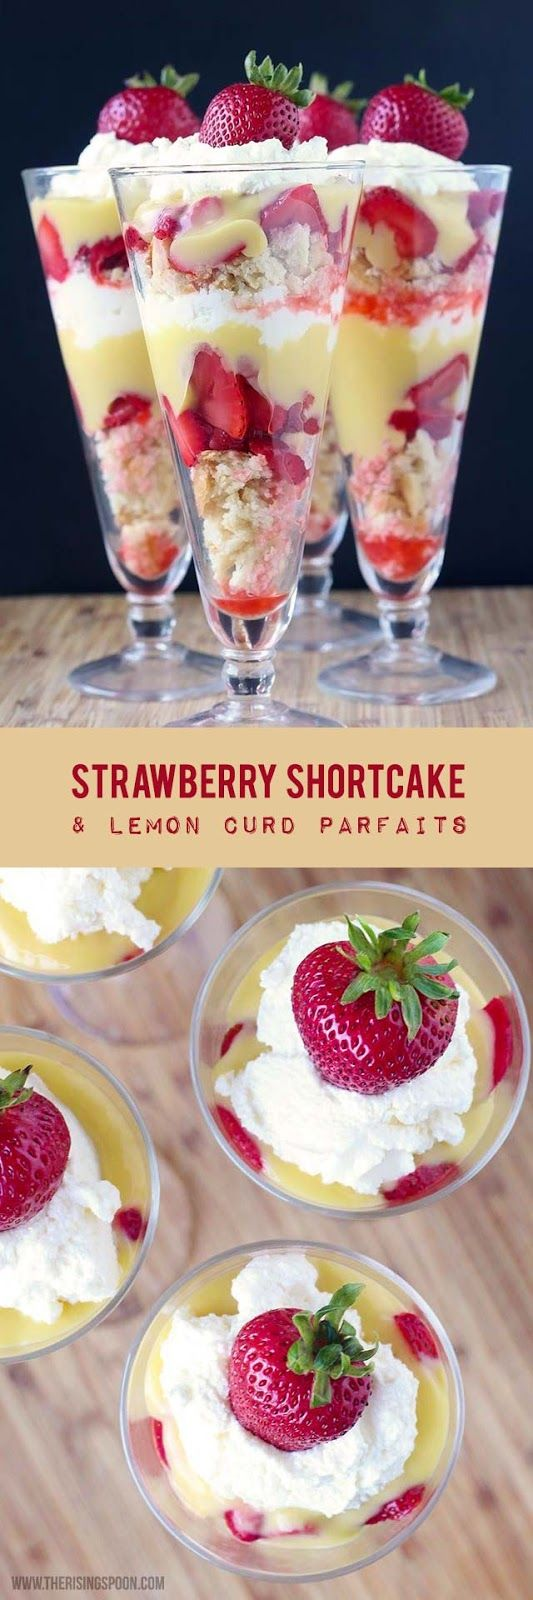 Strawberry parfaits clipart jpg library download Monchoso.com YUM! An easy recipe for strawberry shortcake ... jpg library download